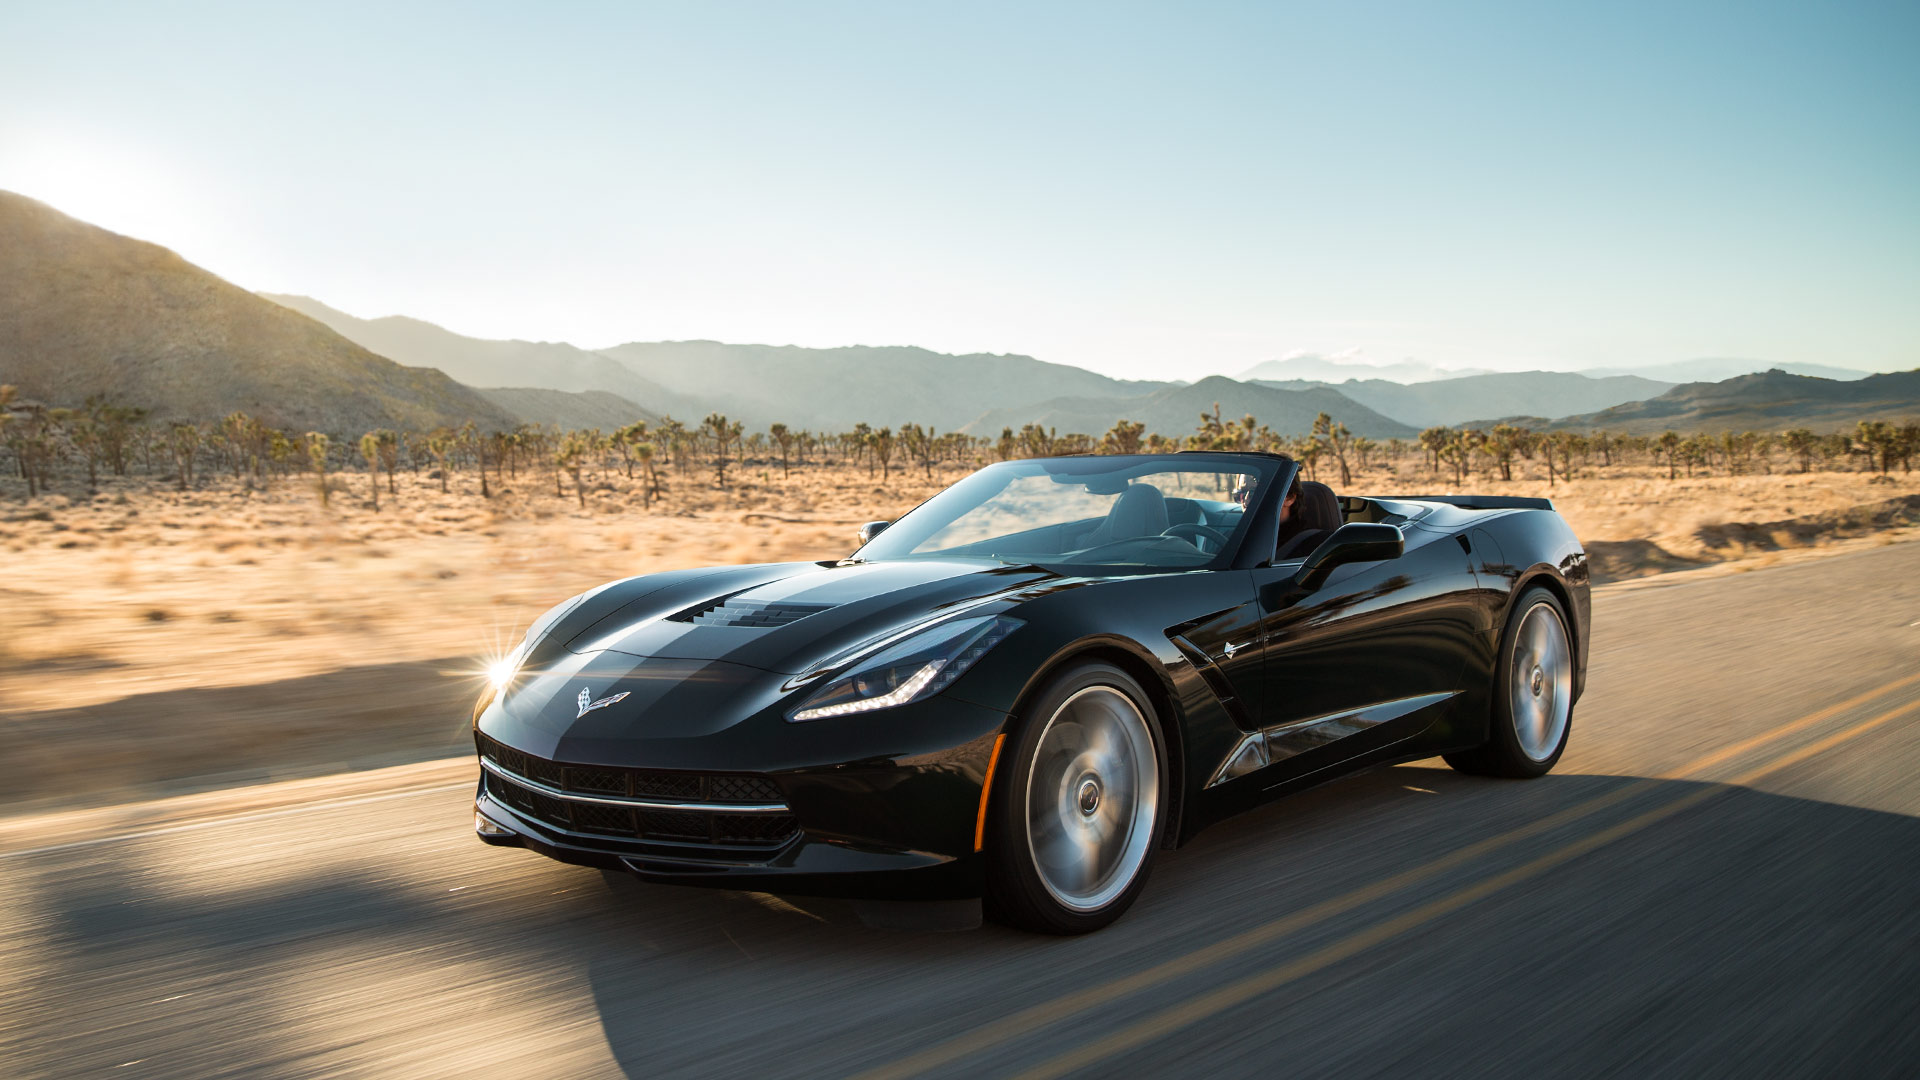 2017 Chevrolet Corvette Stingray Black Exterior